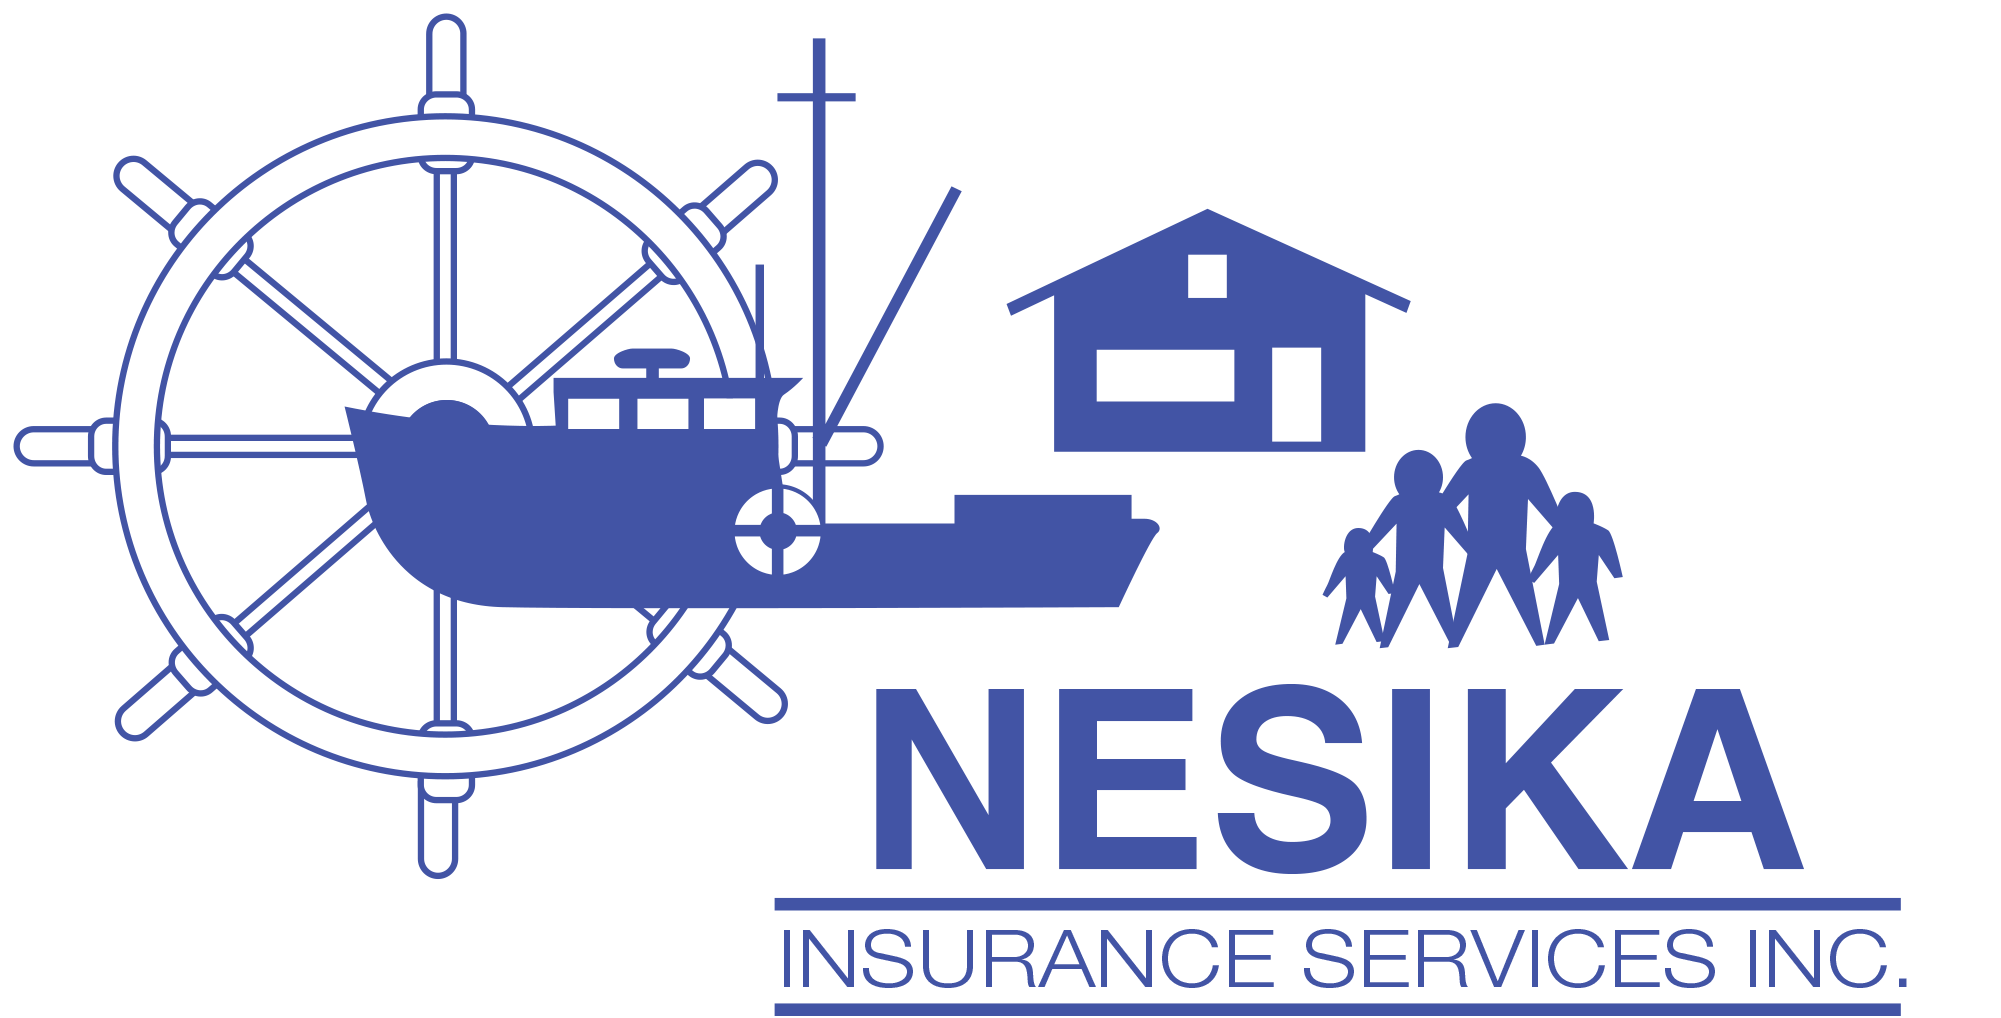 6552-Fairway-Insurance-Nesika-Logo-(2).png